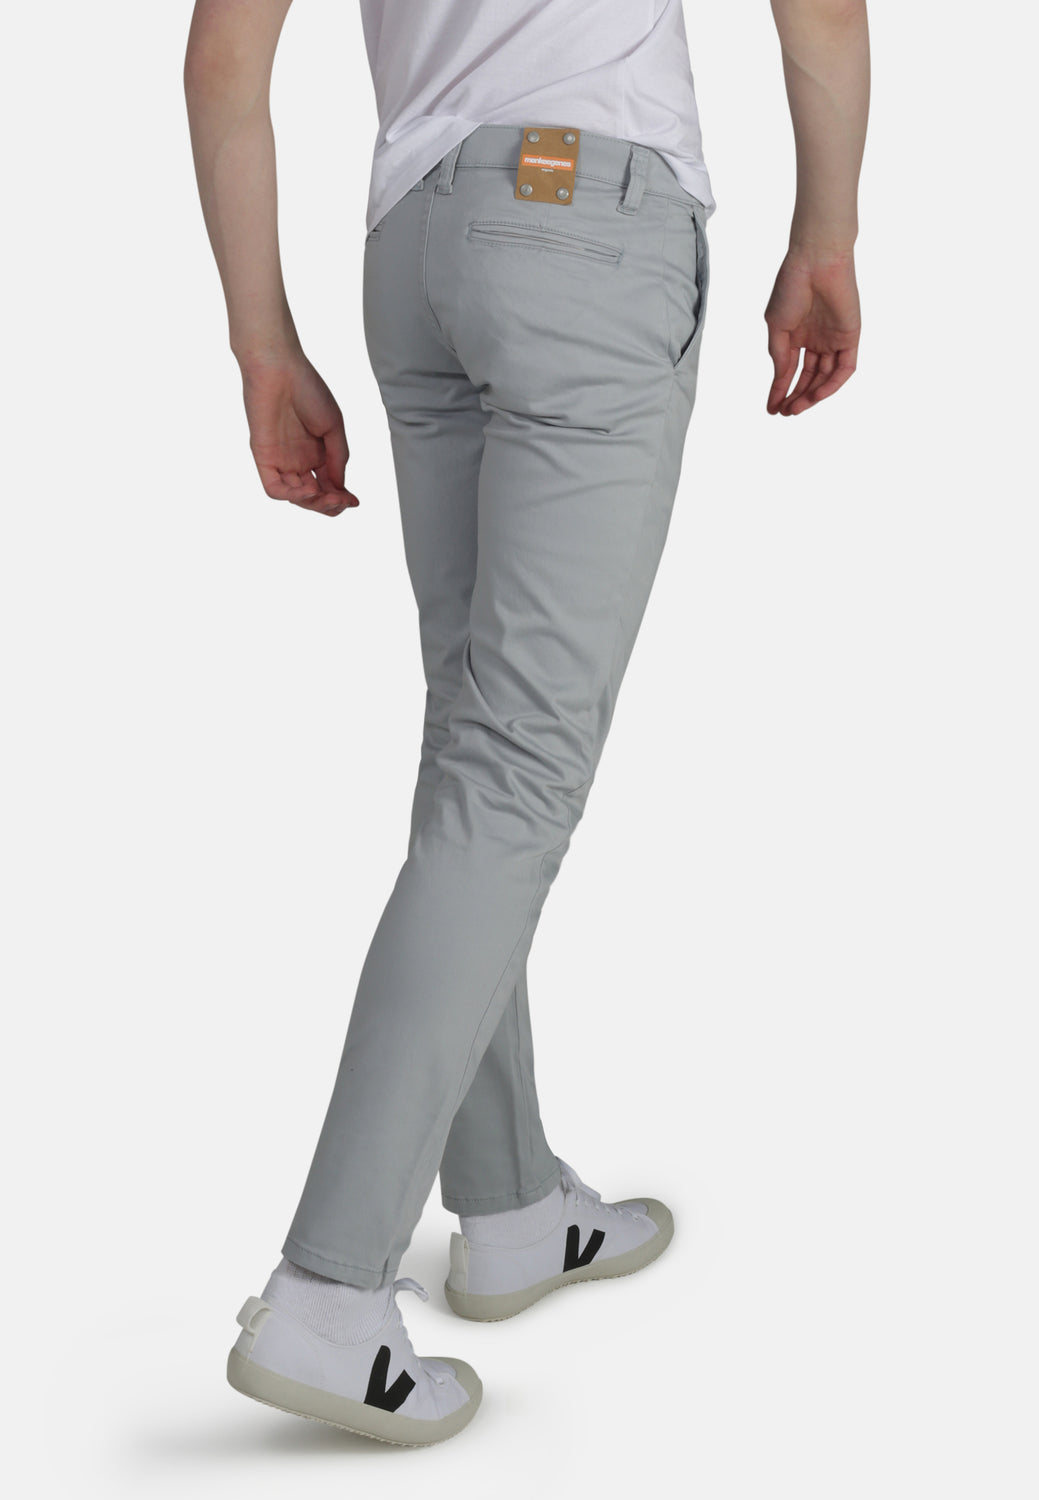 CHINO // Organic Sateen Chino in Silk Blue - Monkee Genes Organic Jeans Denim - Men's Chinos Monkee Genes Official  Monkee Genes Official